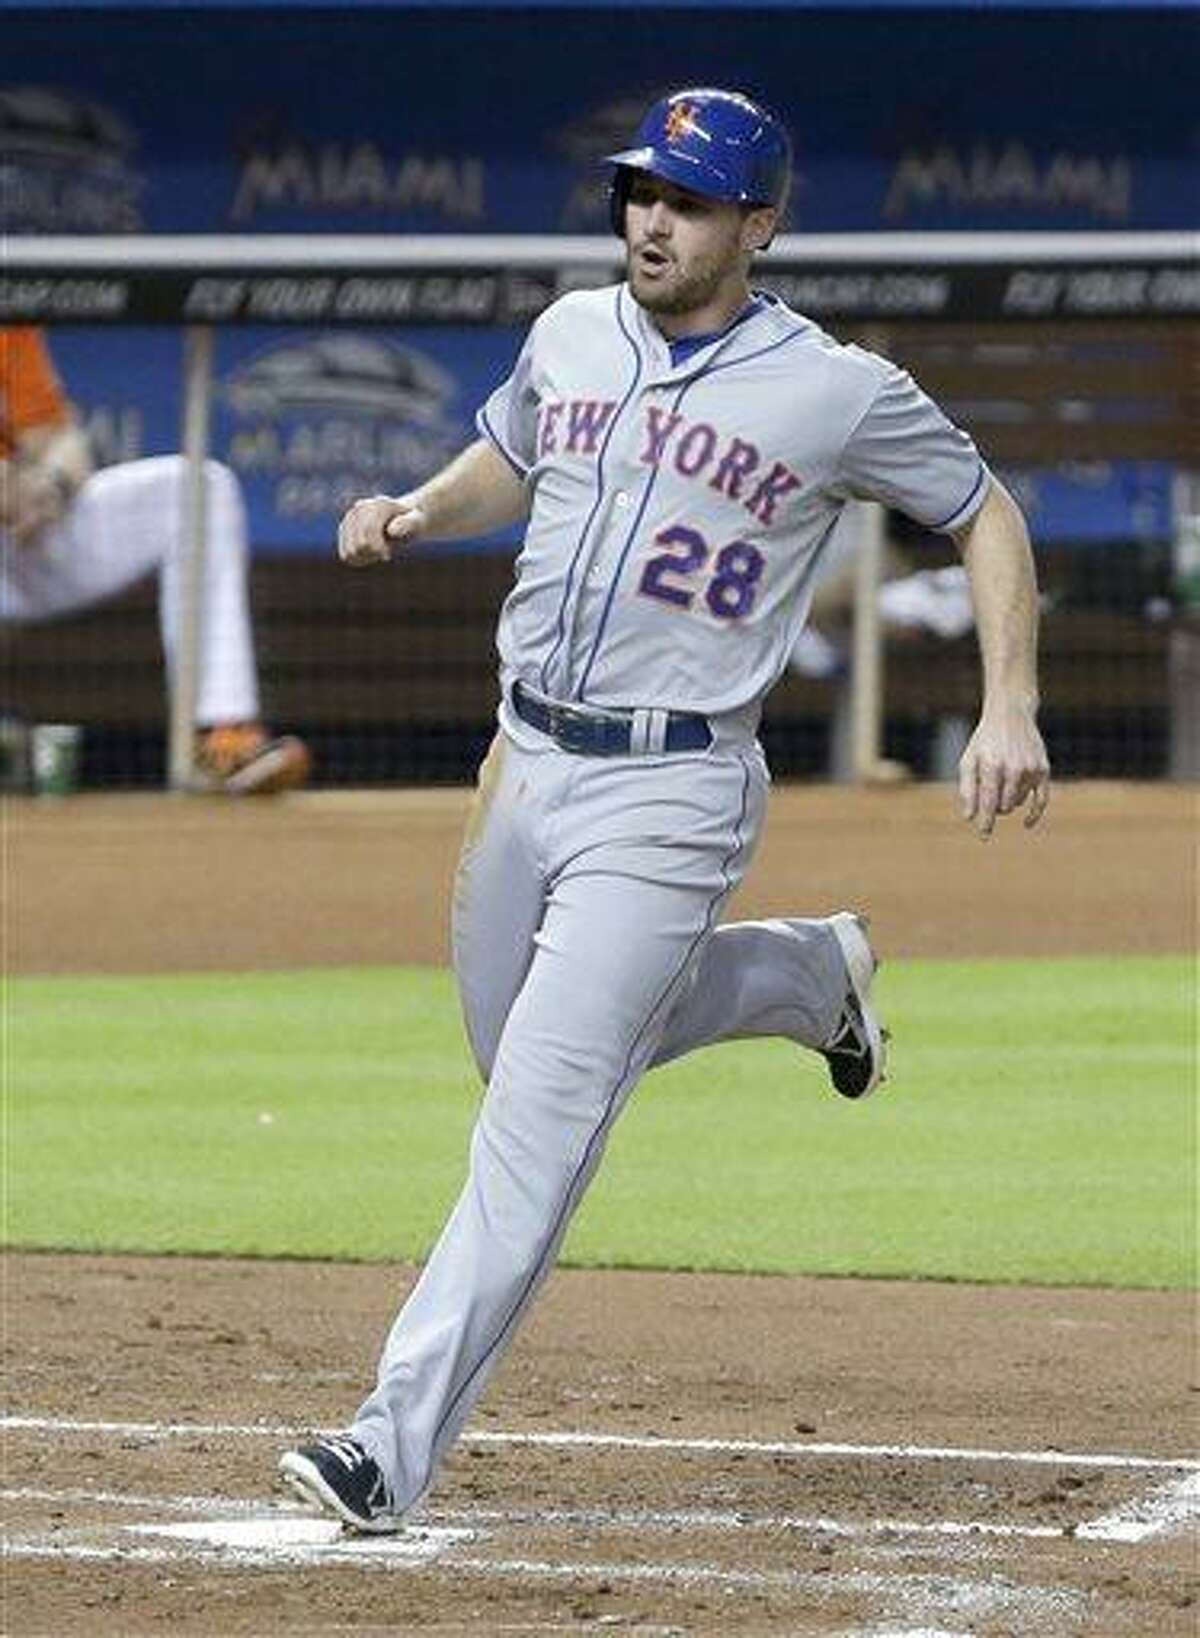 New York Mets' Daniel Murphy crosses home plate to score on a double by David Wright during the third inning of a baseball game against the Miami Marlins, Monday, July 29, 2013 in Miami. The Mets defeated the Marlins 6-5. (AP Photo/Wilfredo Lee)